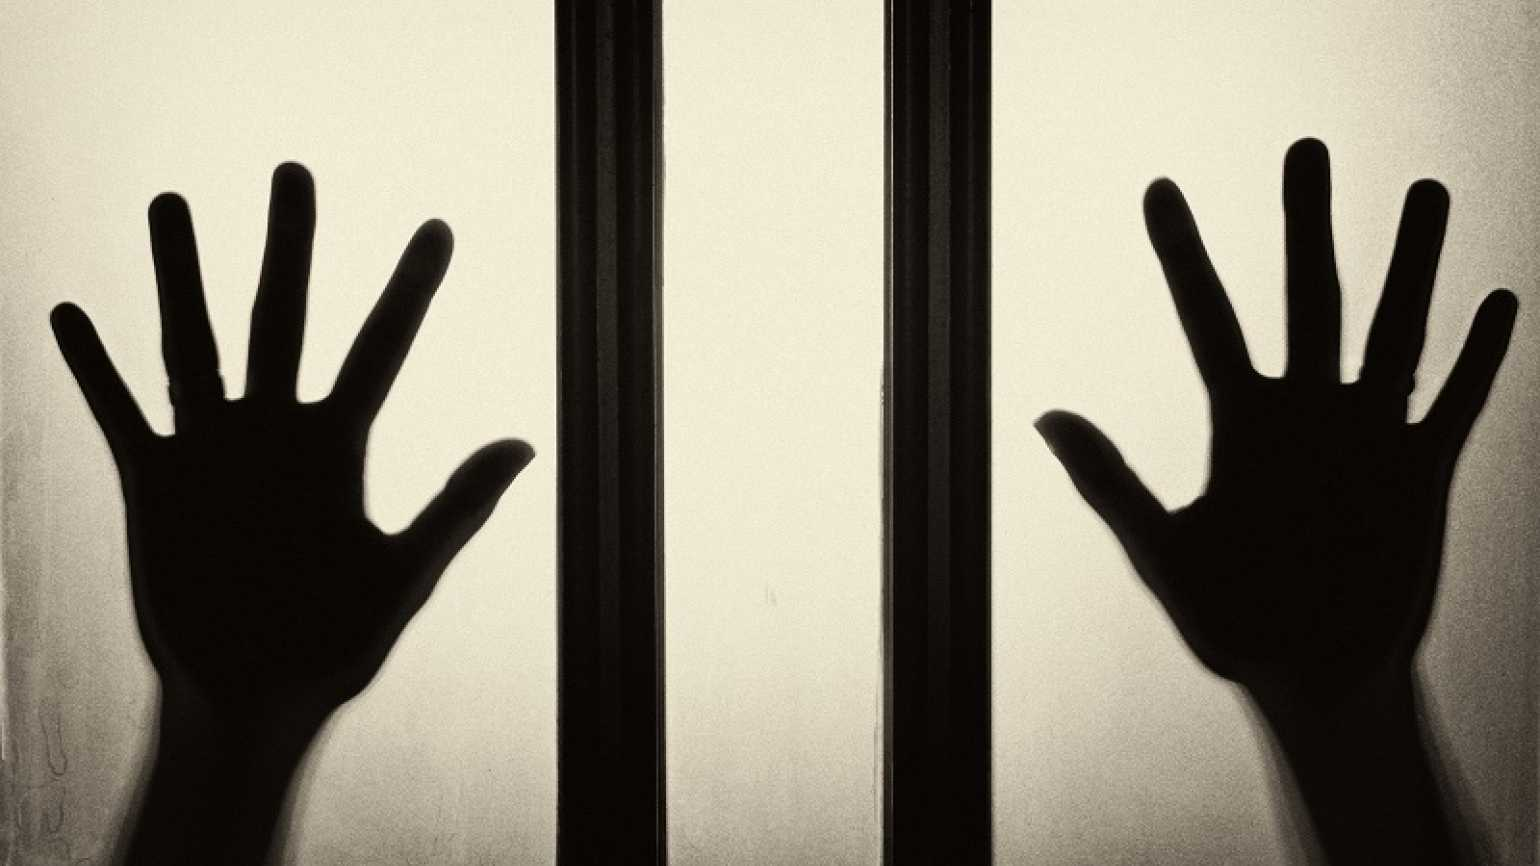 Two hands of a trapped person pressed against glass